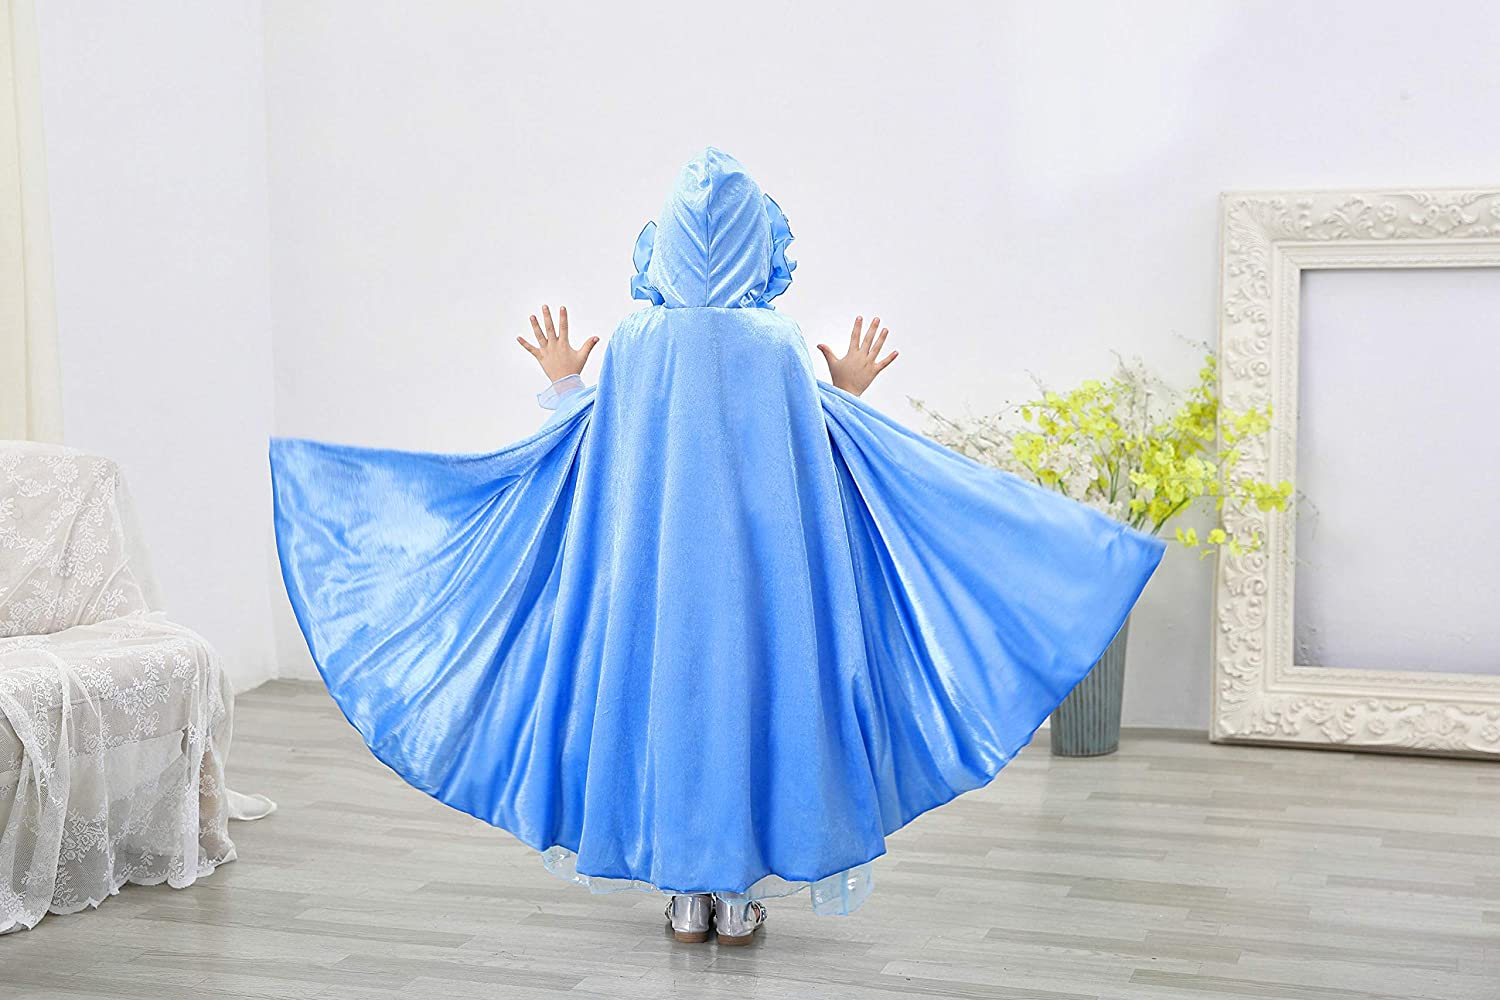 Bankids Princess Cape Christmas Princess Hooded Long Cape Cloak Costume for Girls Dress Up 3-12Years